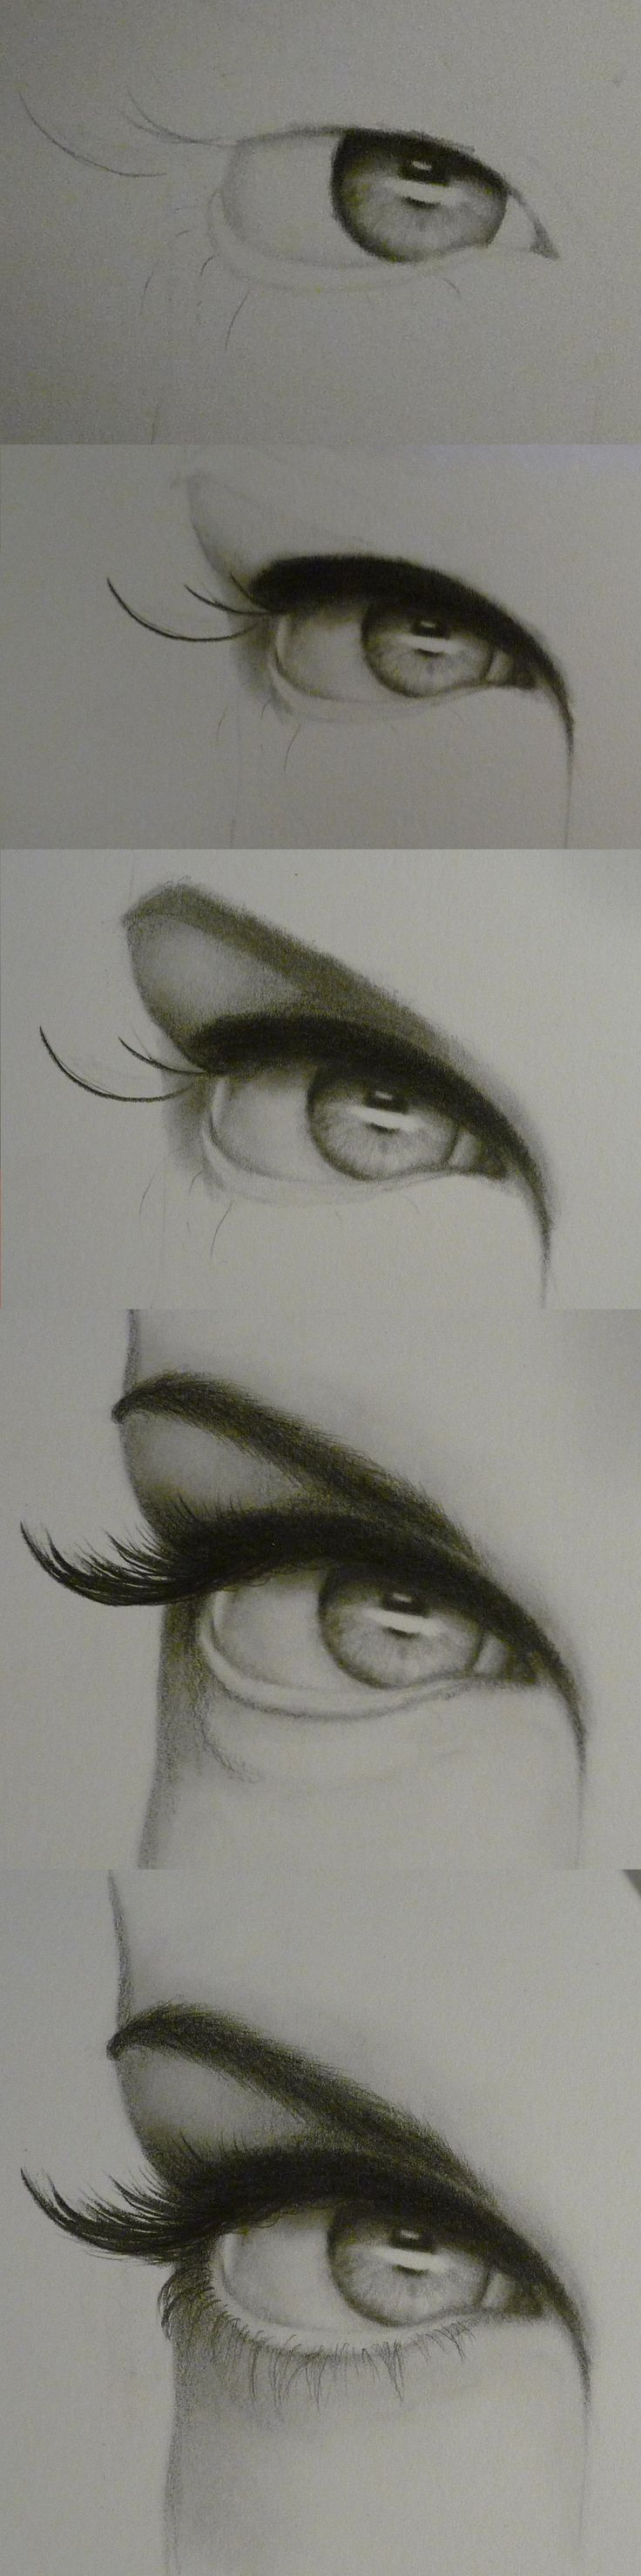 Eye Progression by ~lovedolphins10409 on deviantART